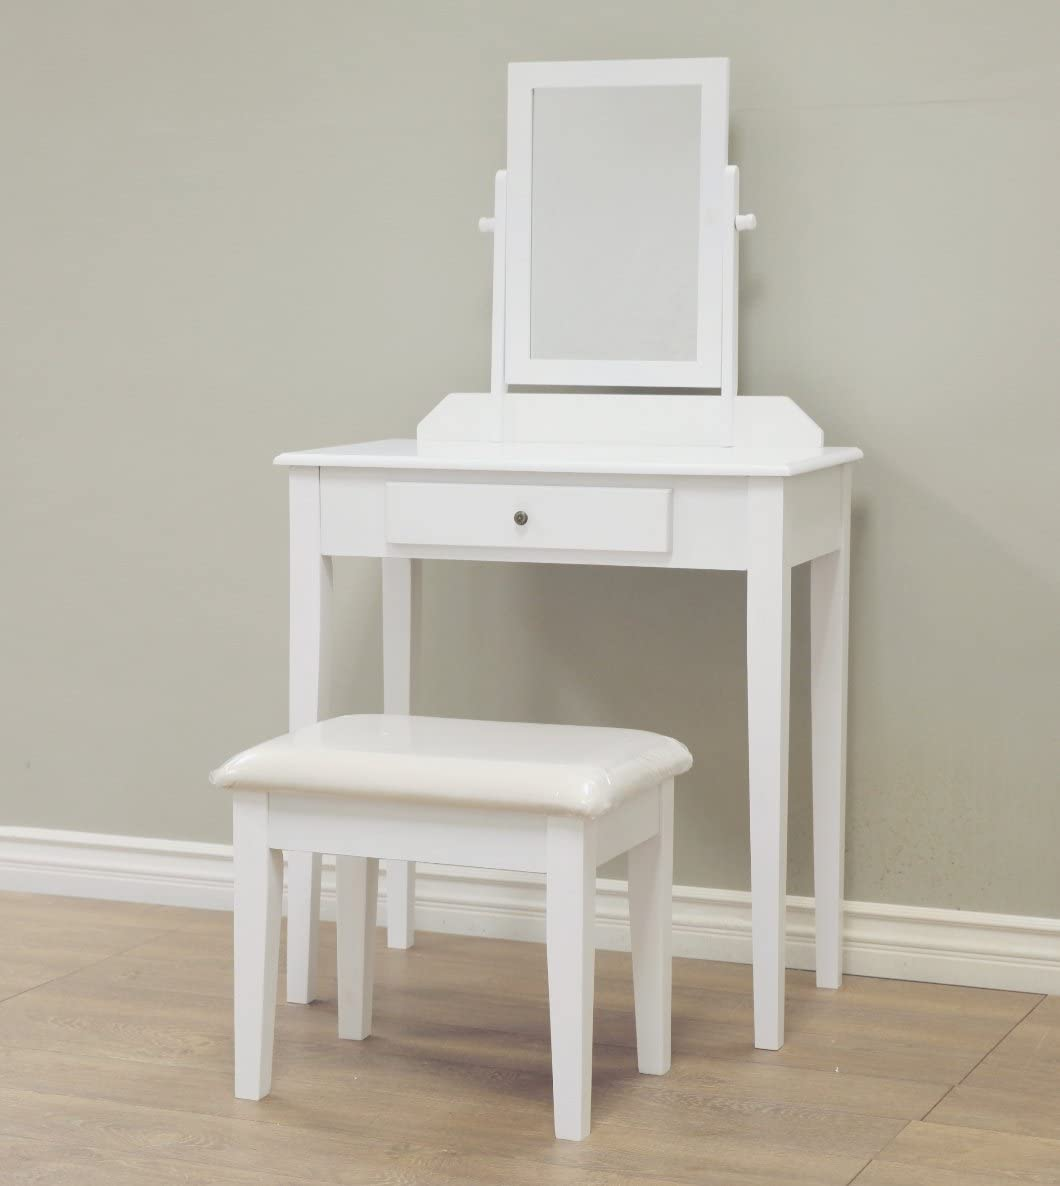 Frenchi Home Furnishing Vanity Set, One Mirror, White